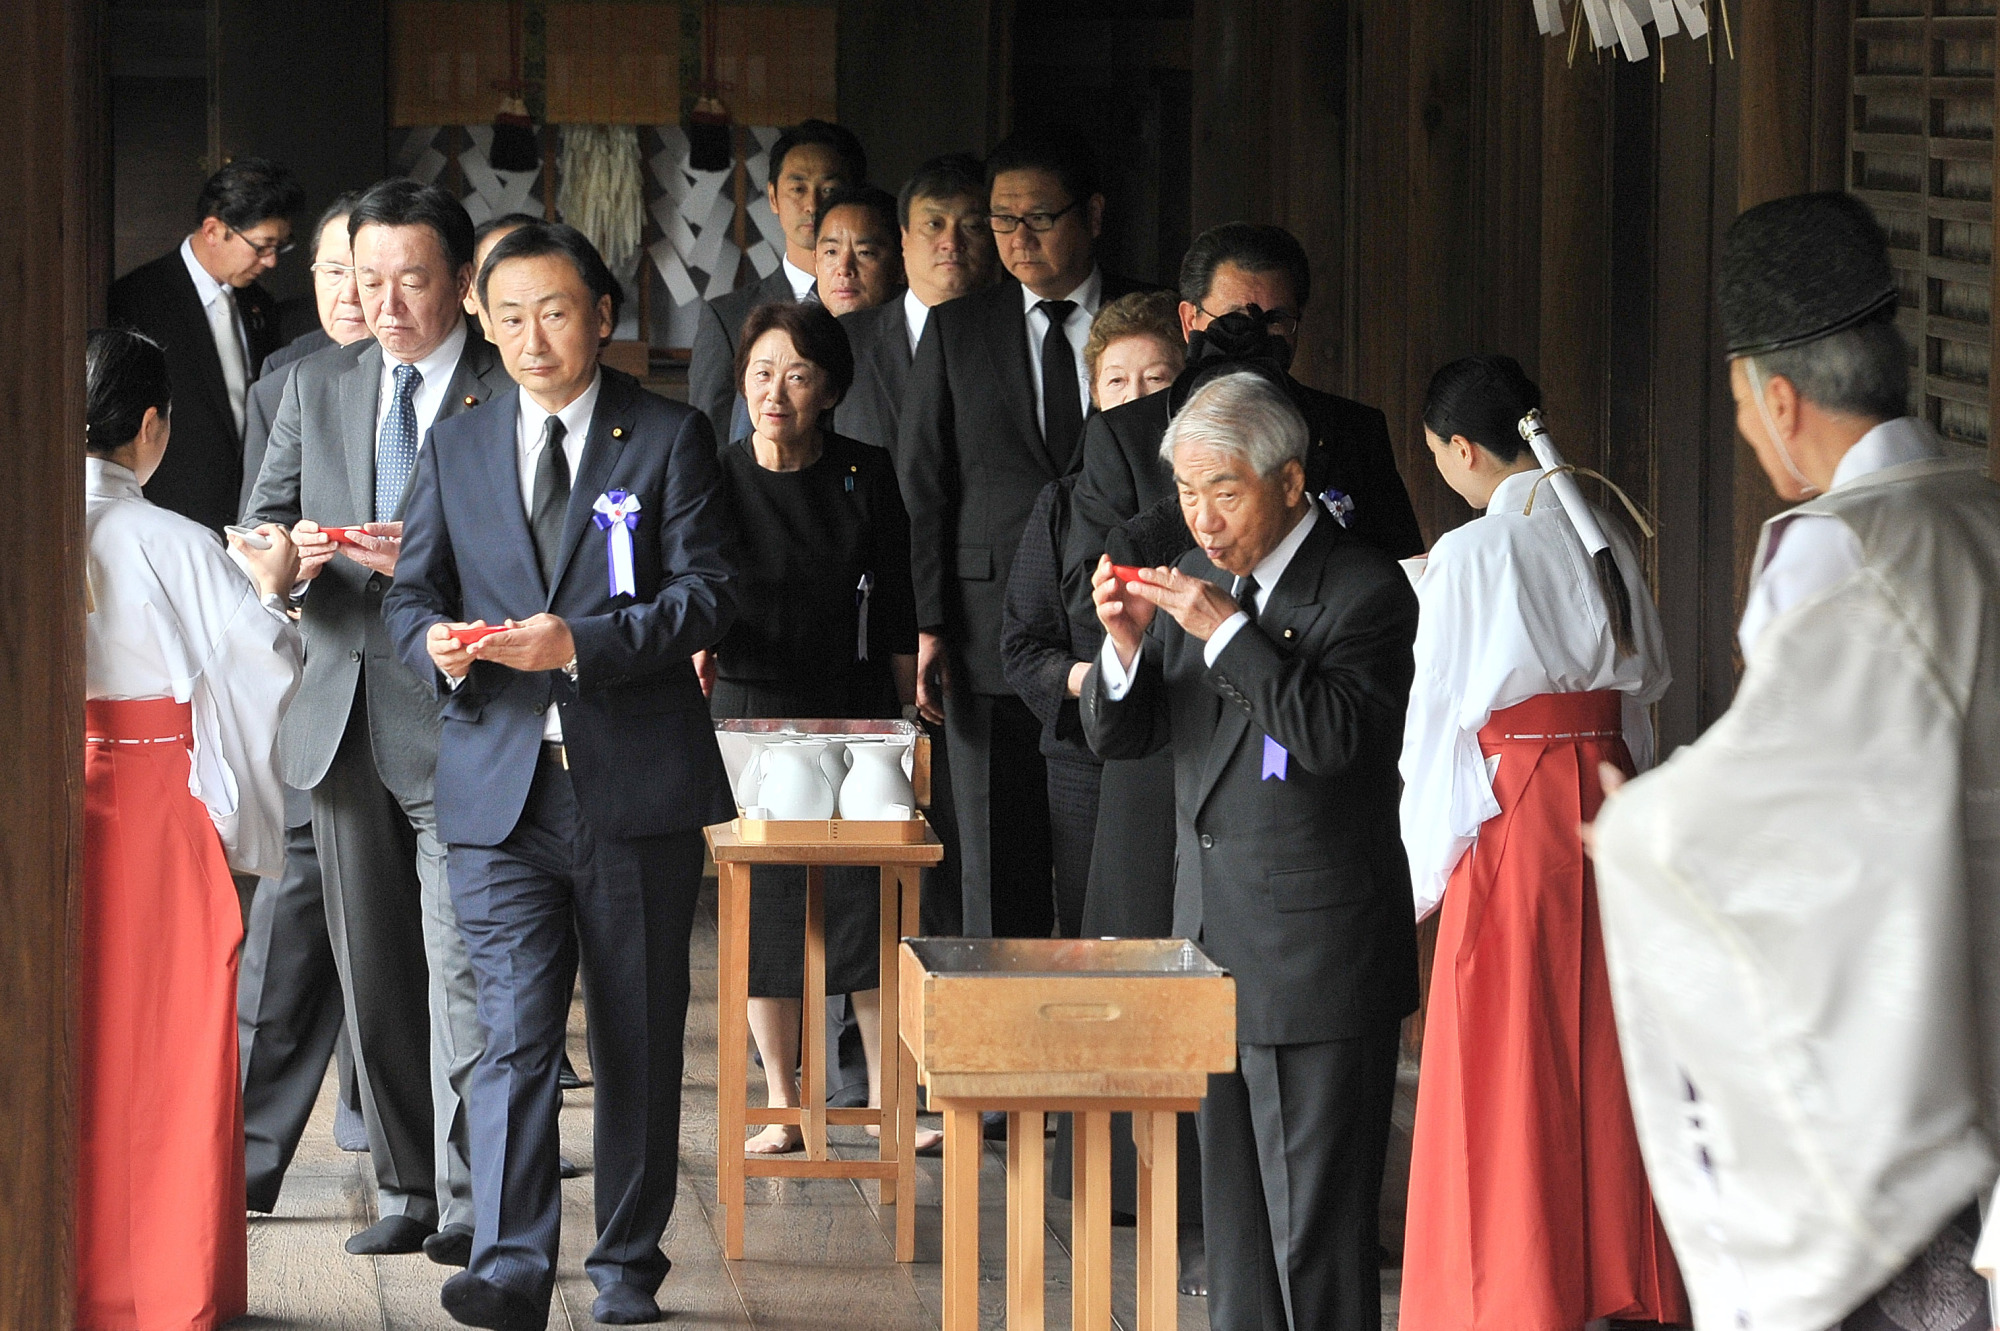 Lawmakers visit the war-linked Yasukuni Shrine in Tokyo on Tuesday, the 72nd anniversary of Japan's surrender in World War II. | YOSHIAKI MIURA